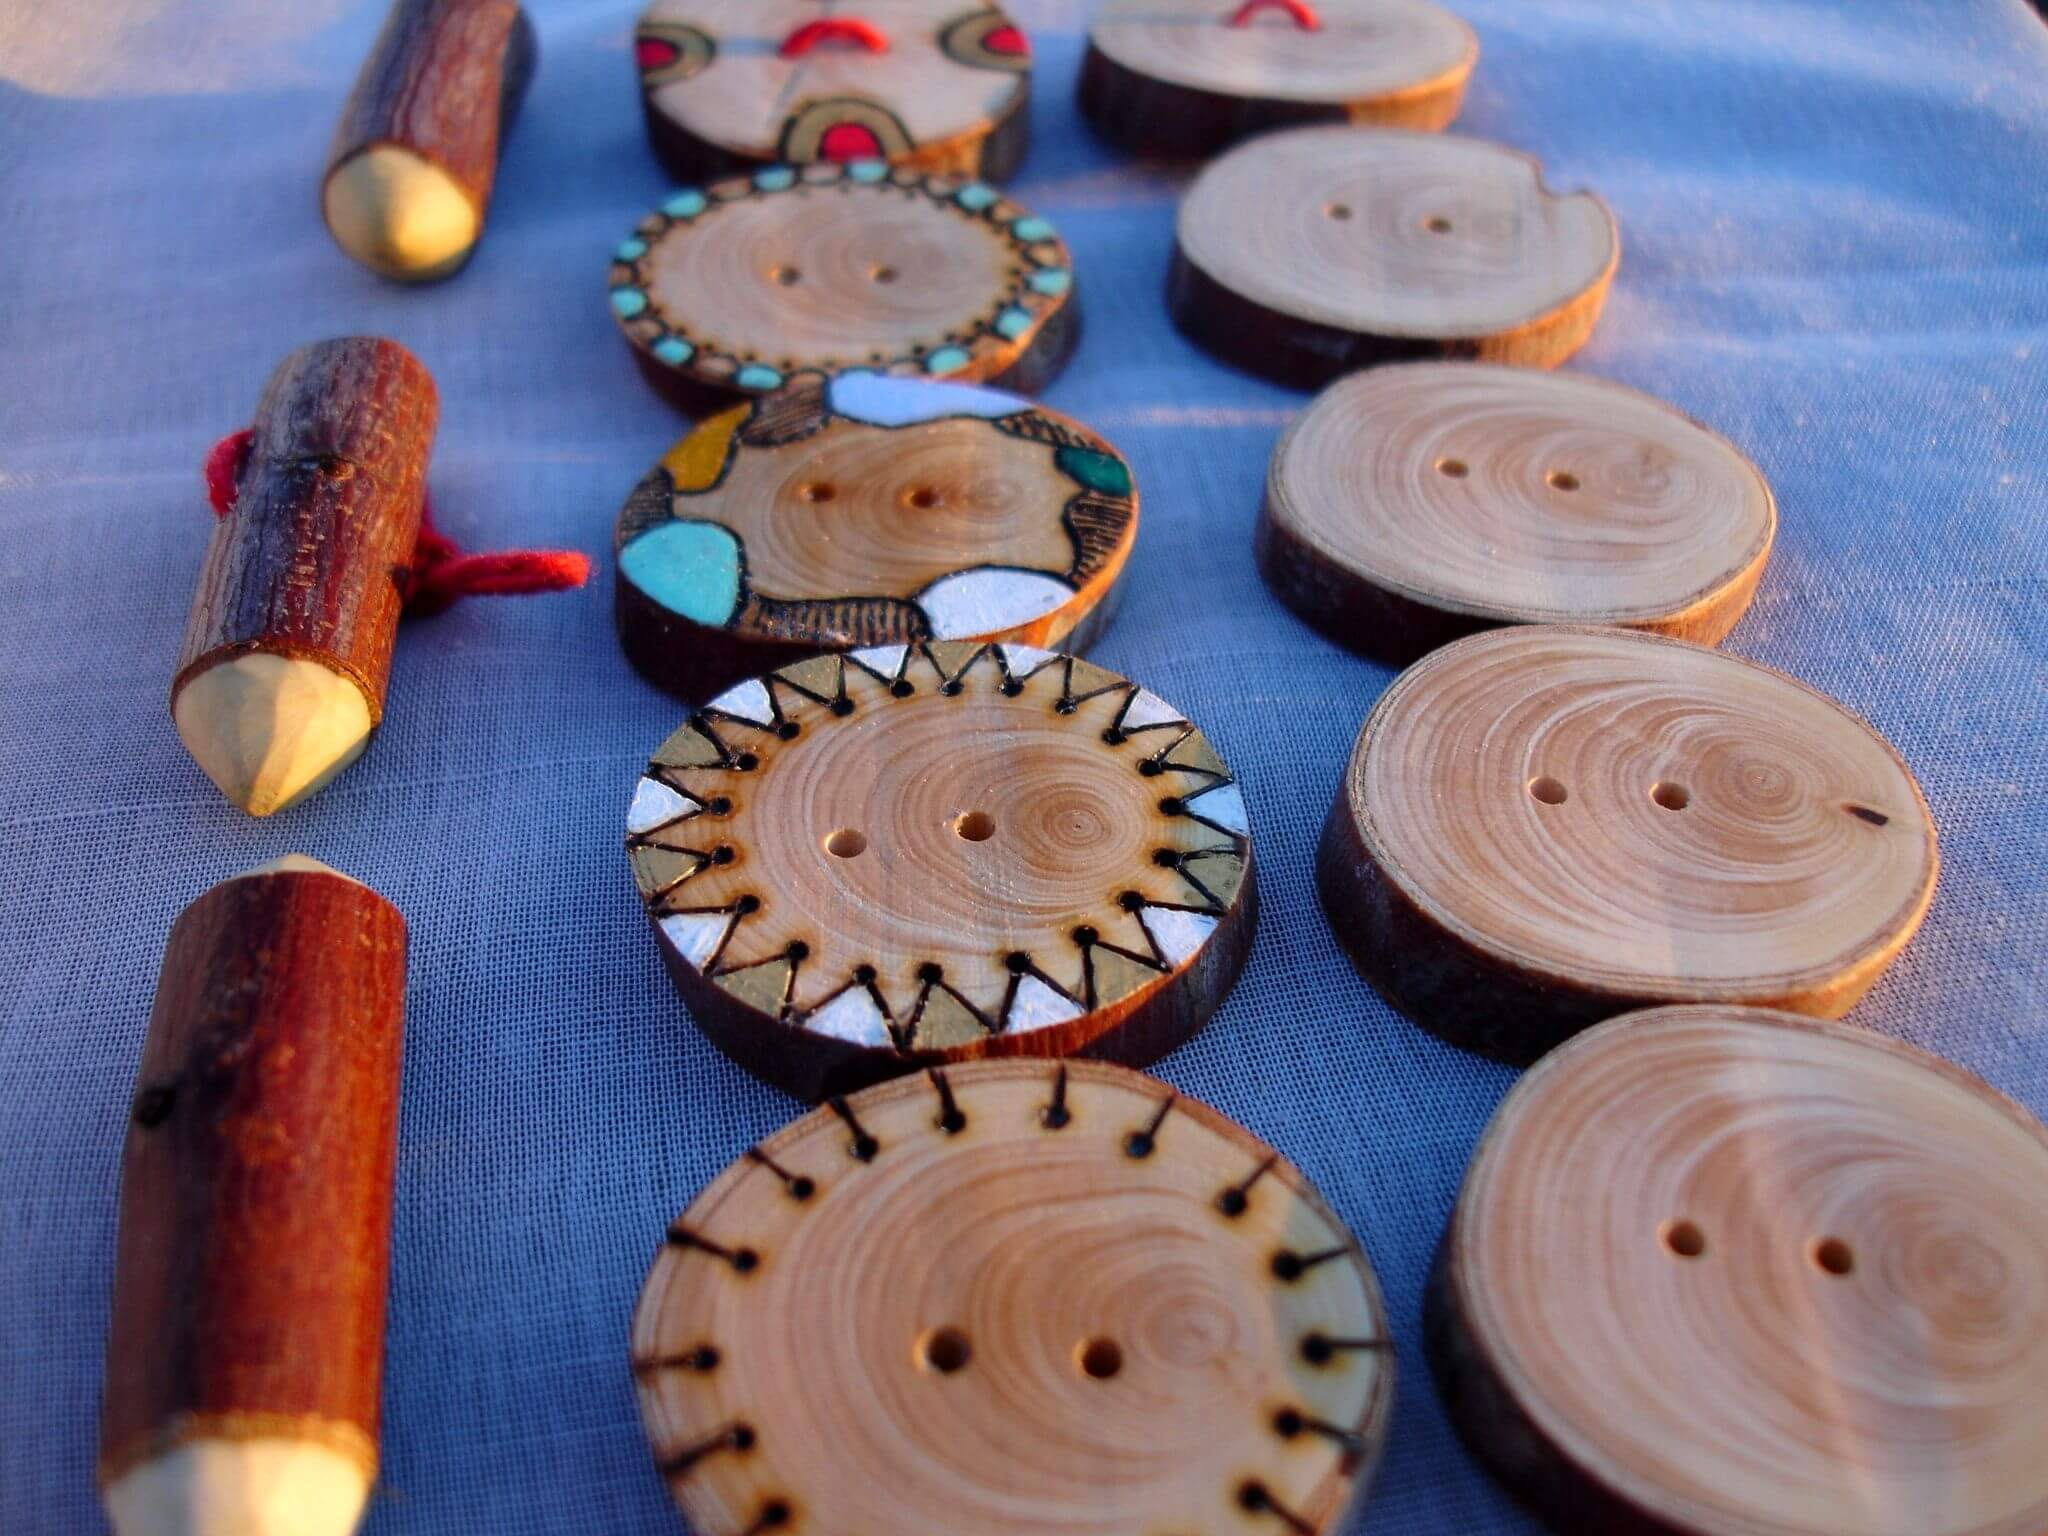 WOOD BURNING BUTTONS DESIGN IDEAS FOR BEGINNERS